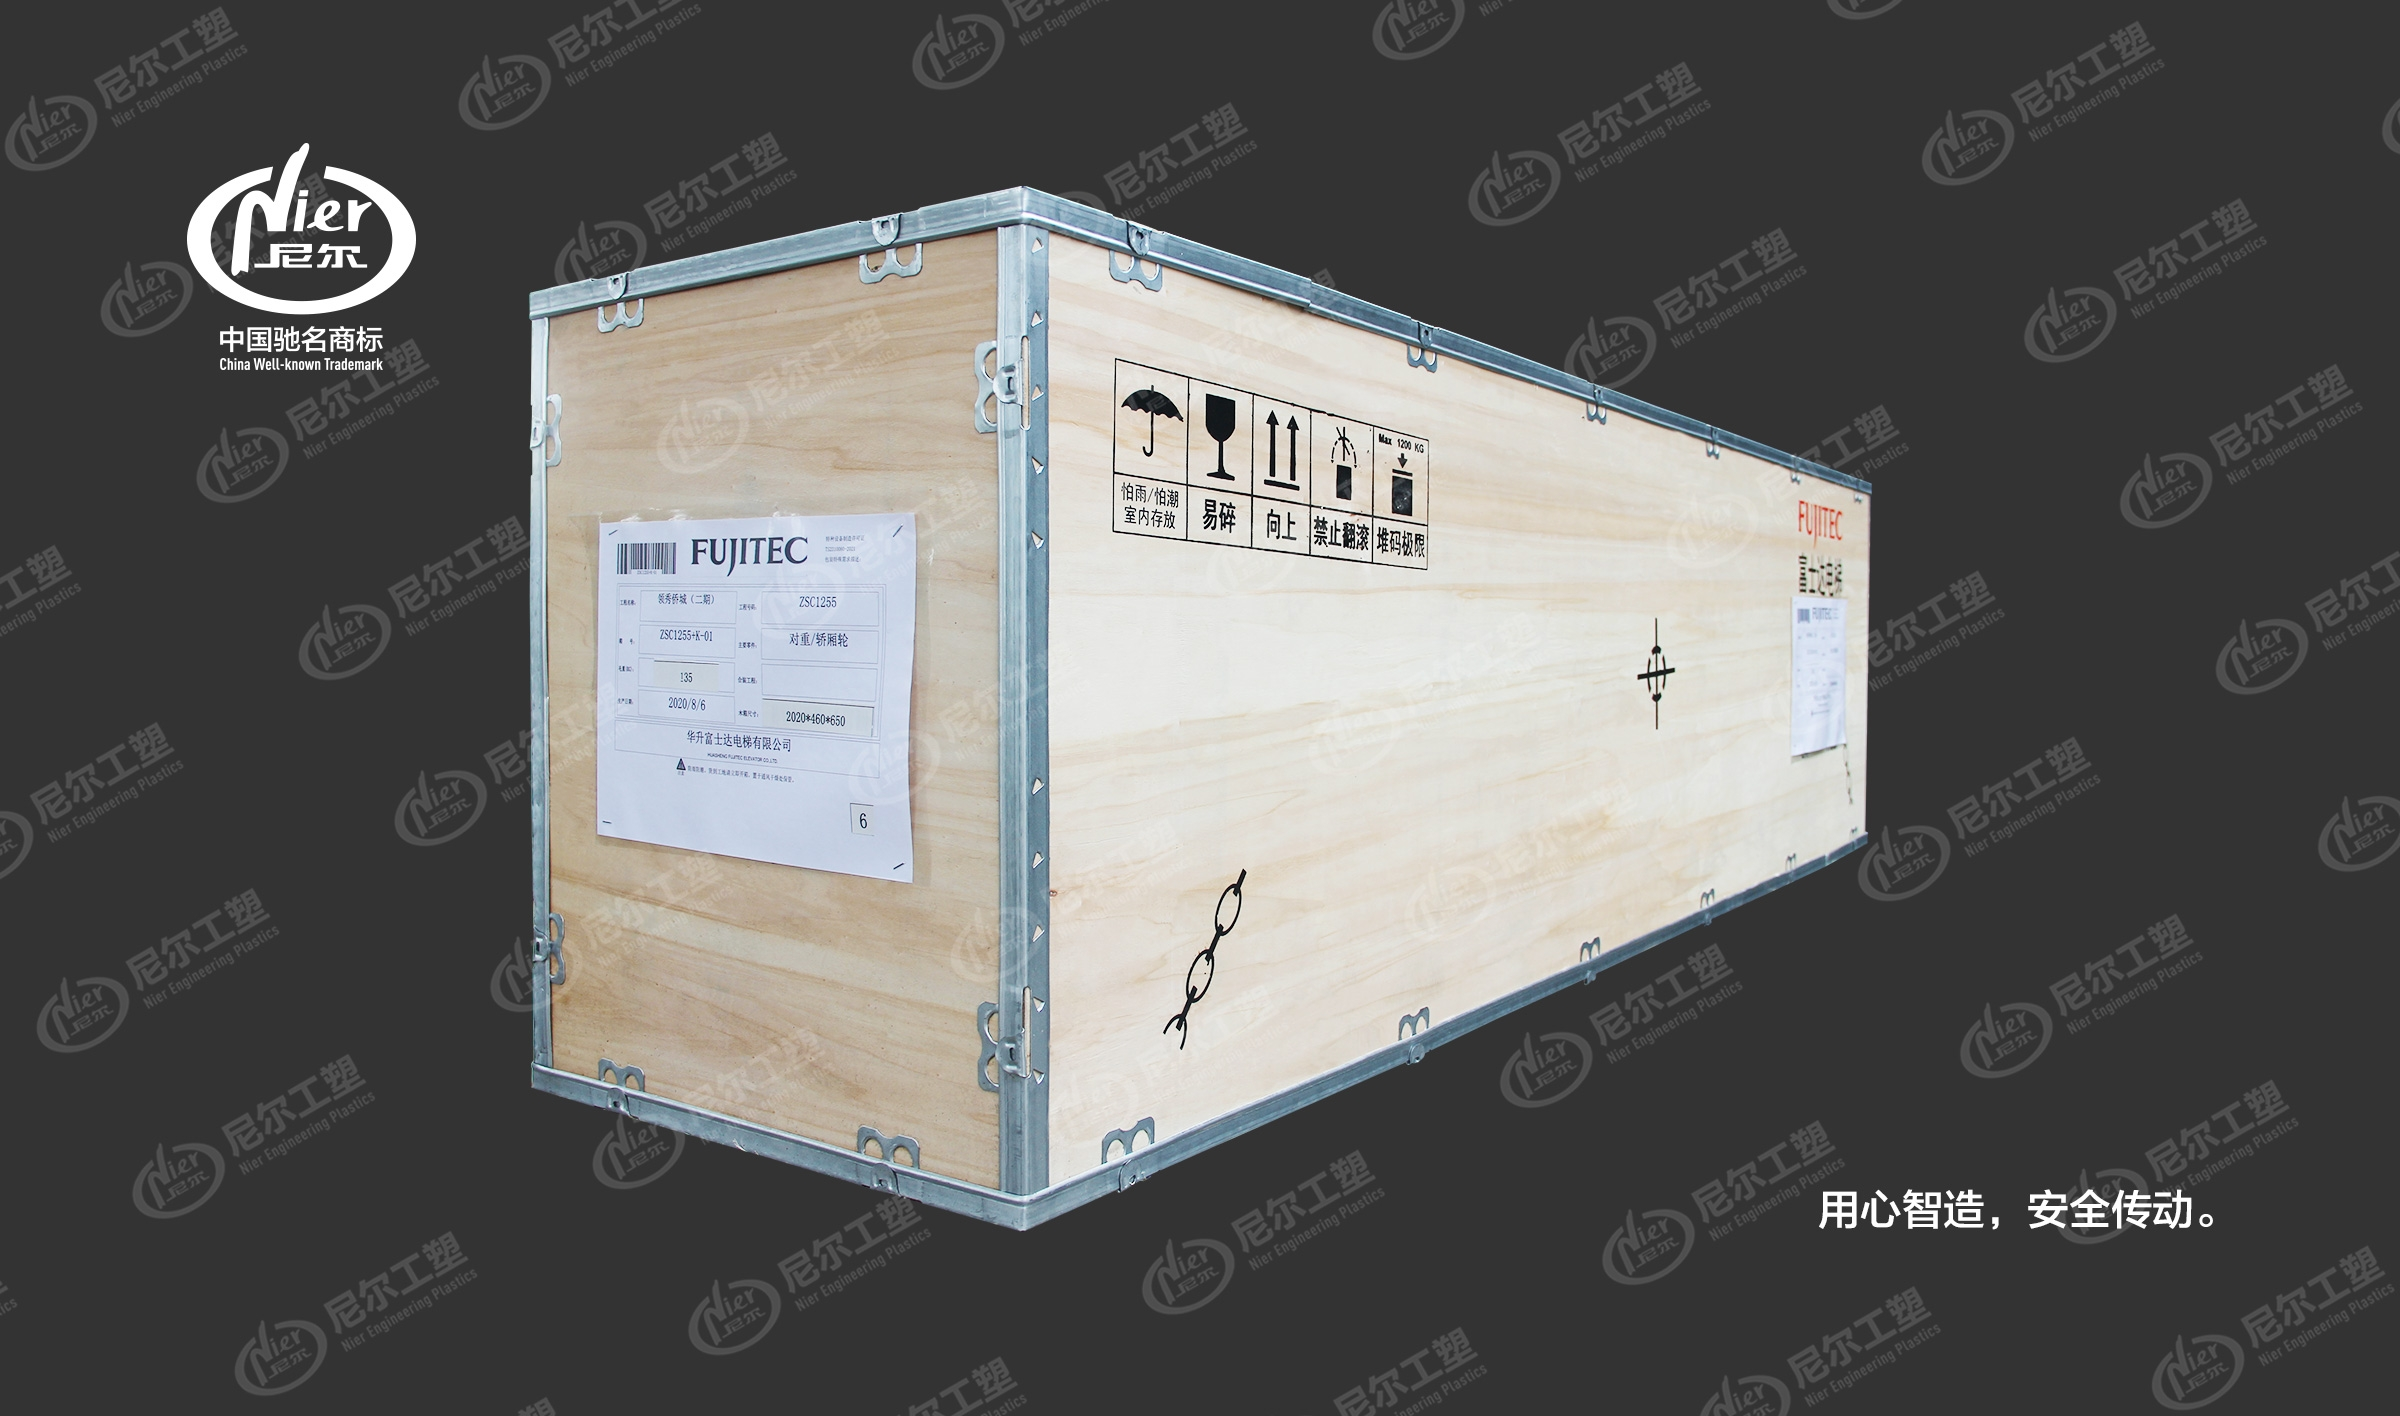 Elevator components packed in whole wooden case